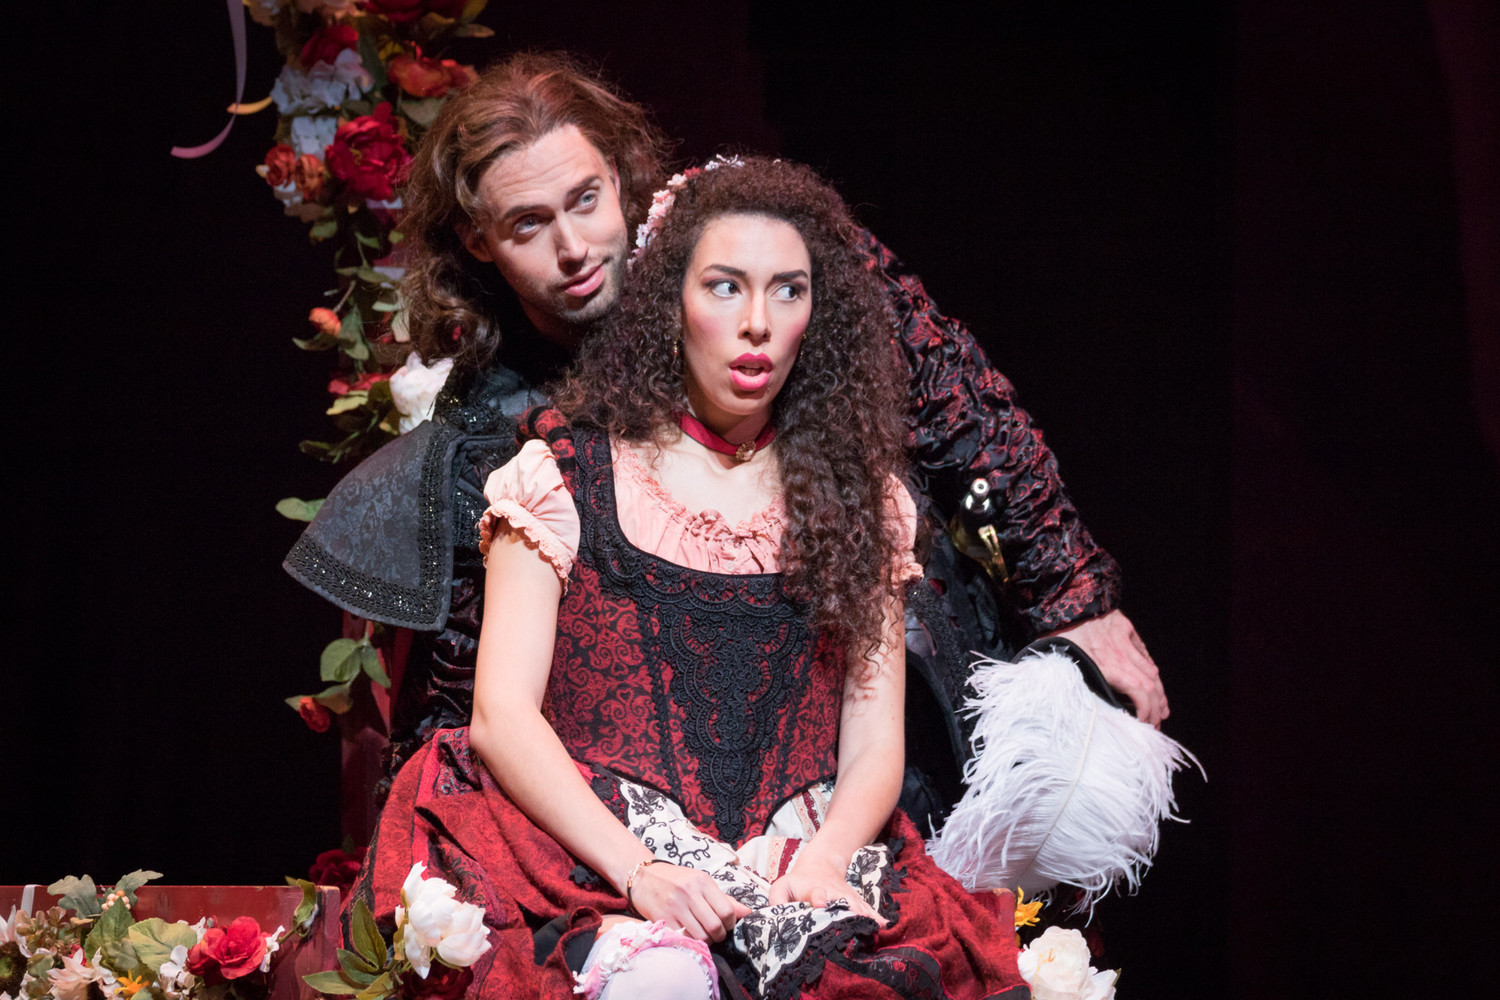 BWW Review: DON GIOVANNI at Virginia Opera